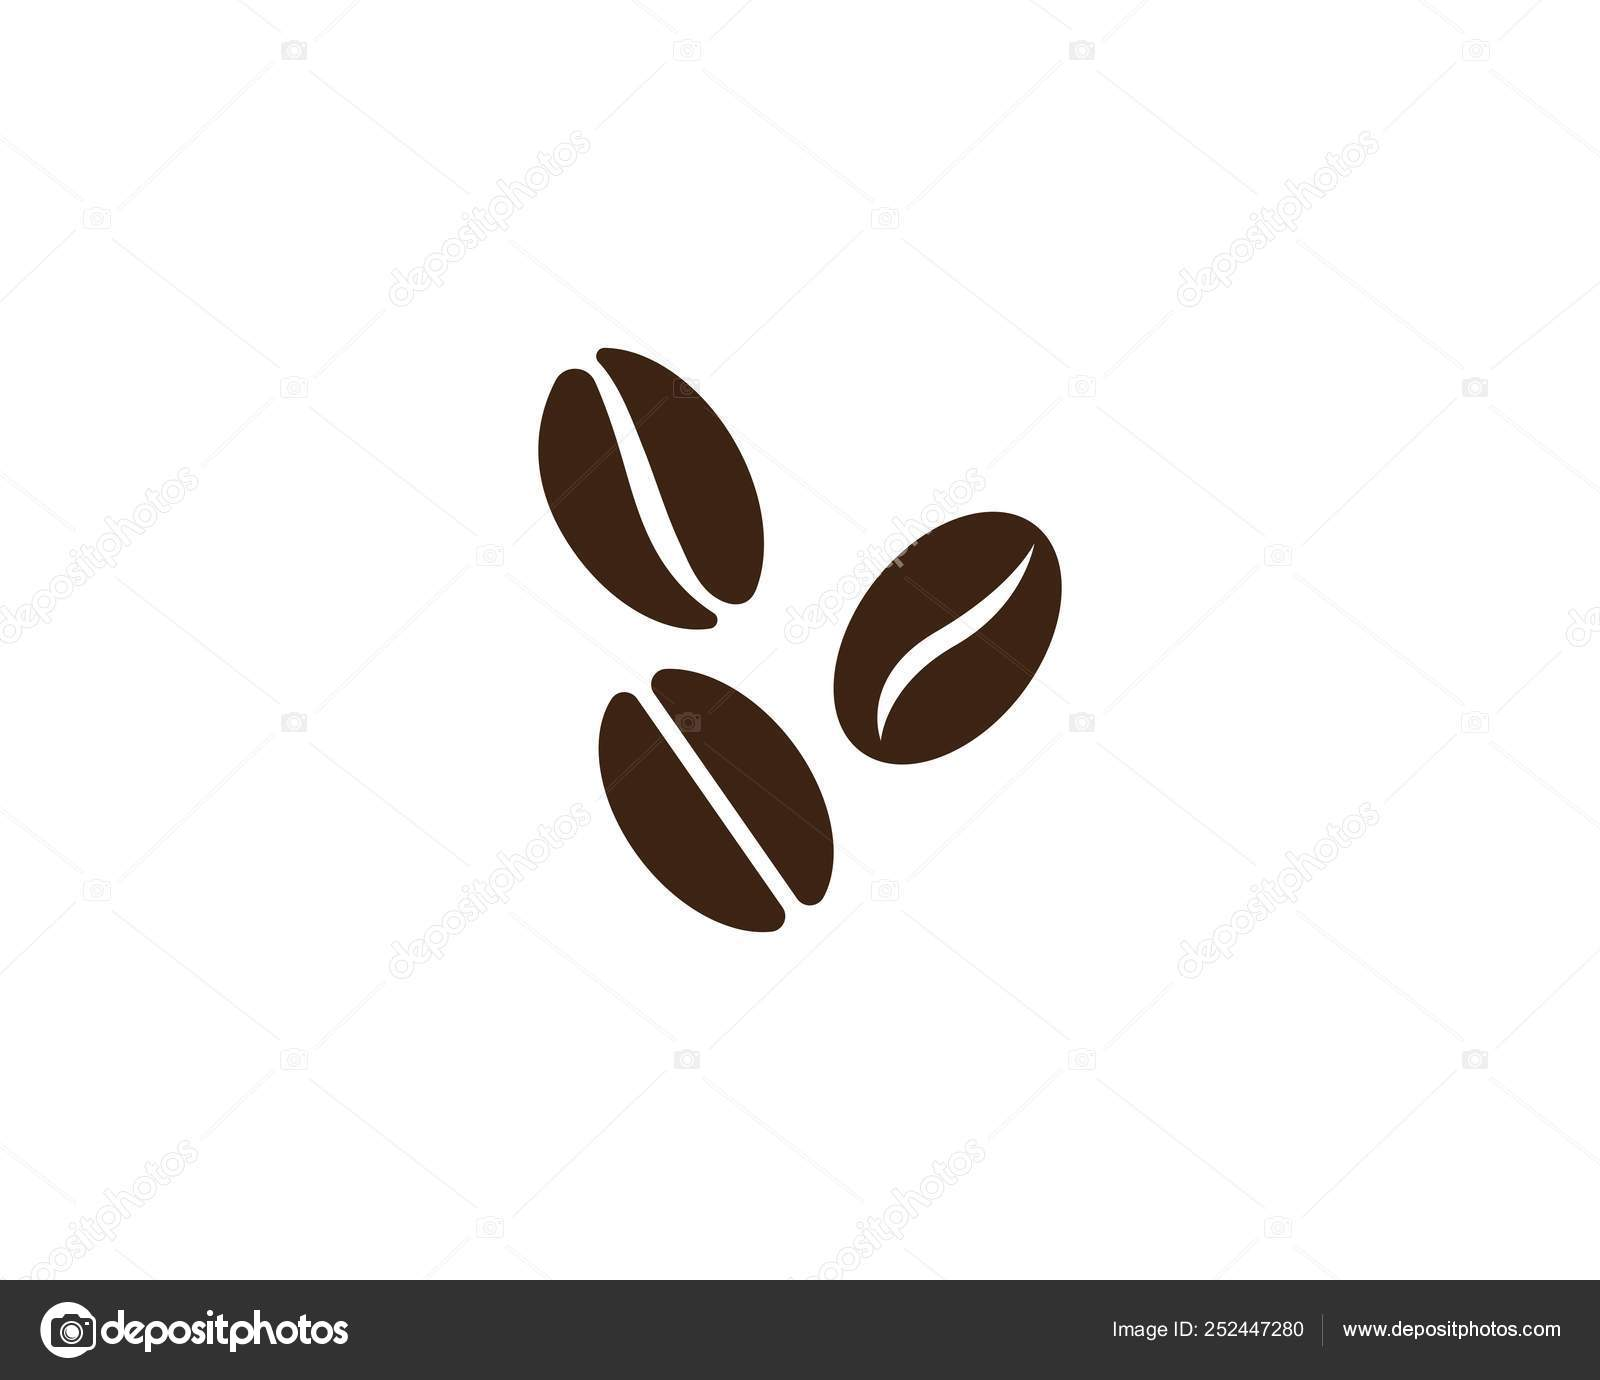 vector coffee beans template stock vector c uminurwakhidah875 252447280 vector coffee beans template stock vector c uminurwakhidah875 252447280